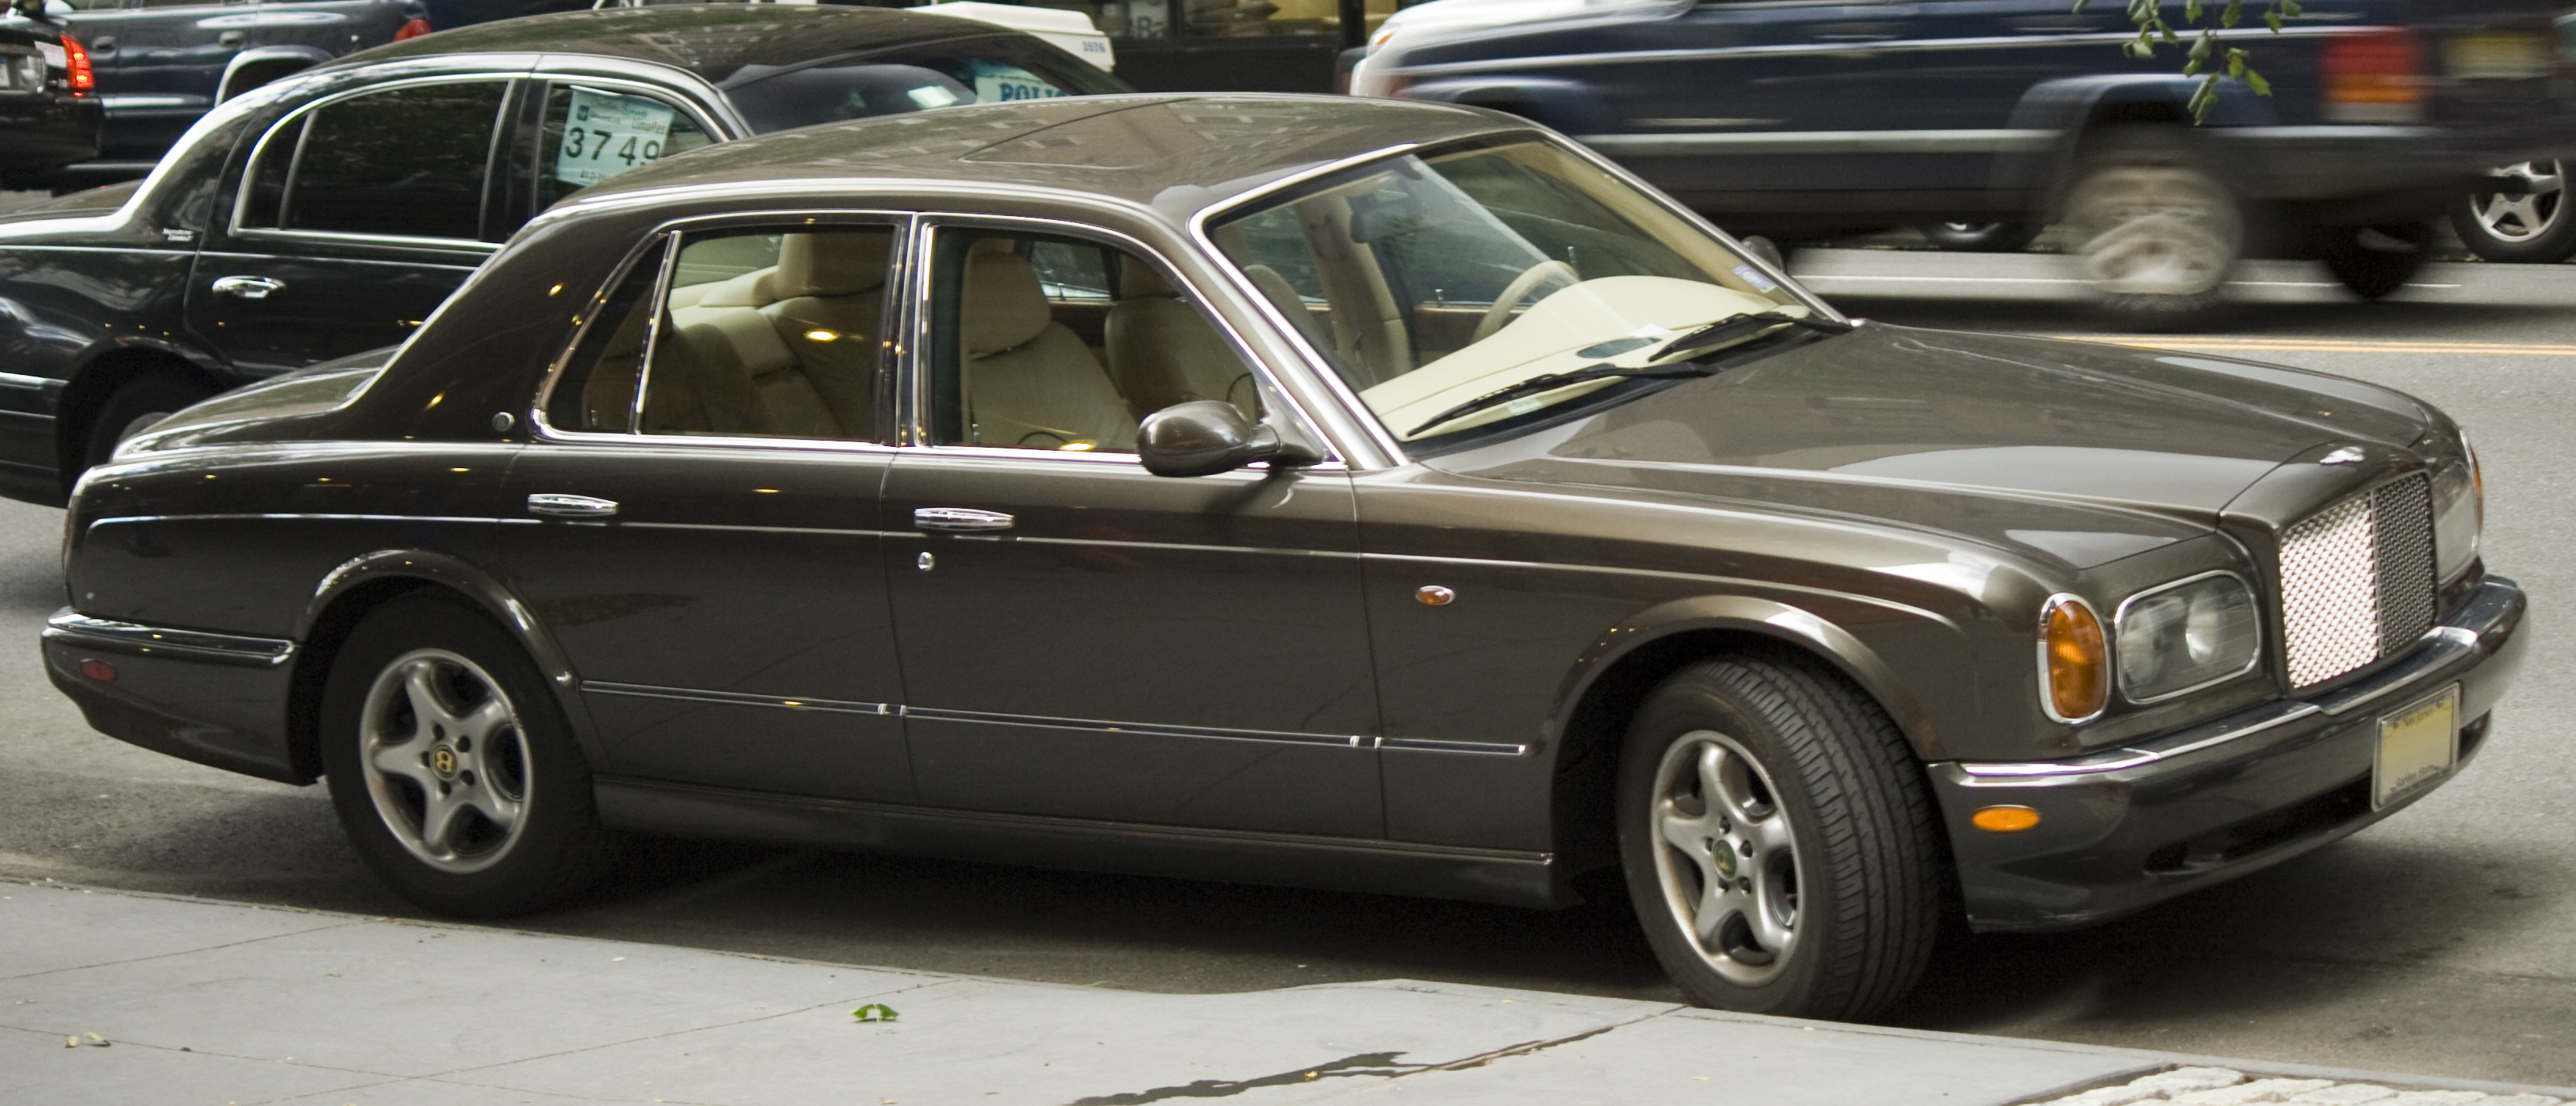 bentley informations makes com arnage photos for bestcarmag sale articles